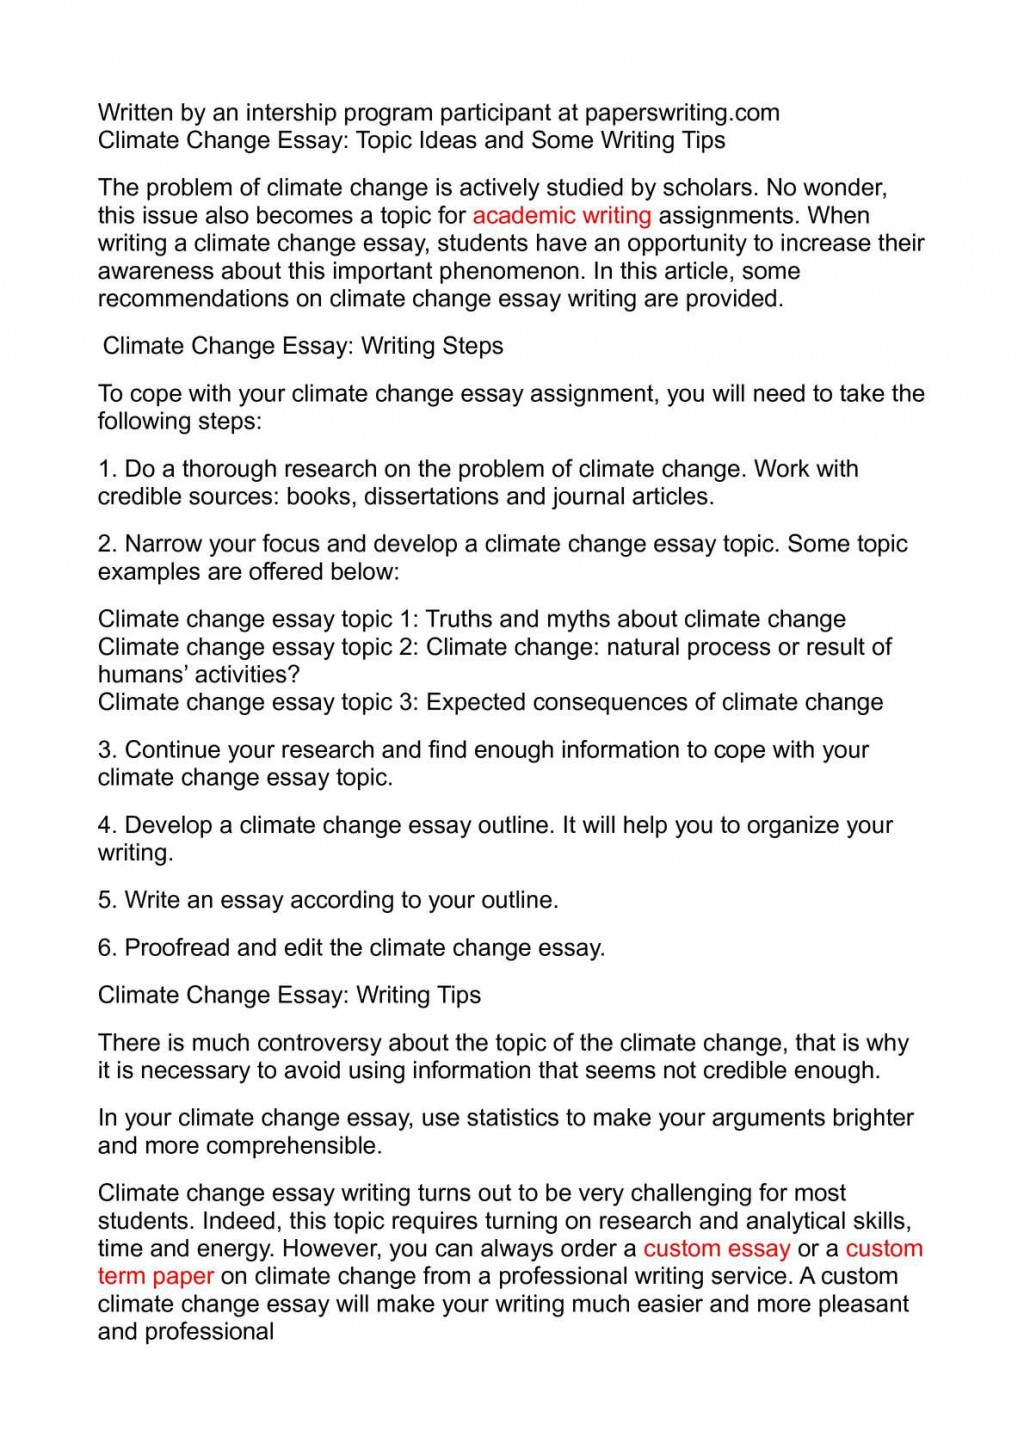 012 Climate Change Essay Topics Uncategorized Global Warming Topic Ways To St Oracleboss Research Paper20 Paper Unusual Ideas For High School Good Large